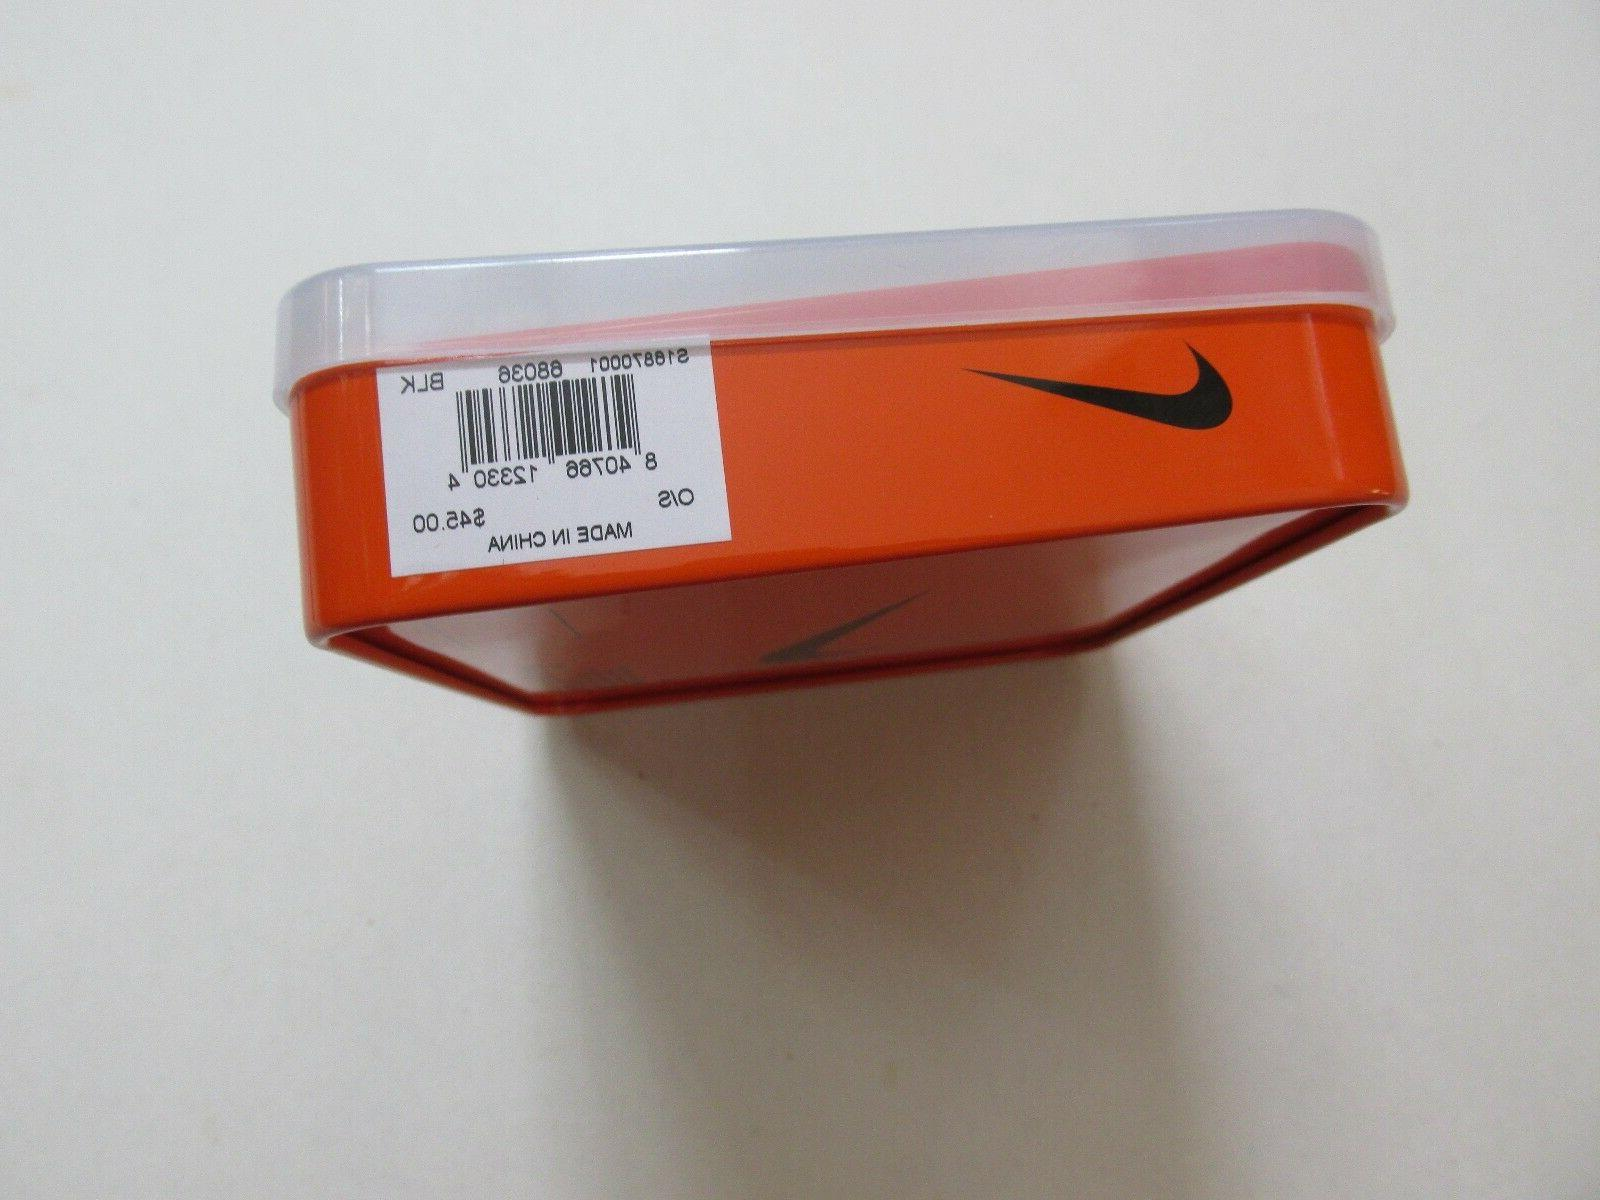 NIKE GOLF MEN'S TEXTURED LEATHER WALLET NEW GIFT BOX